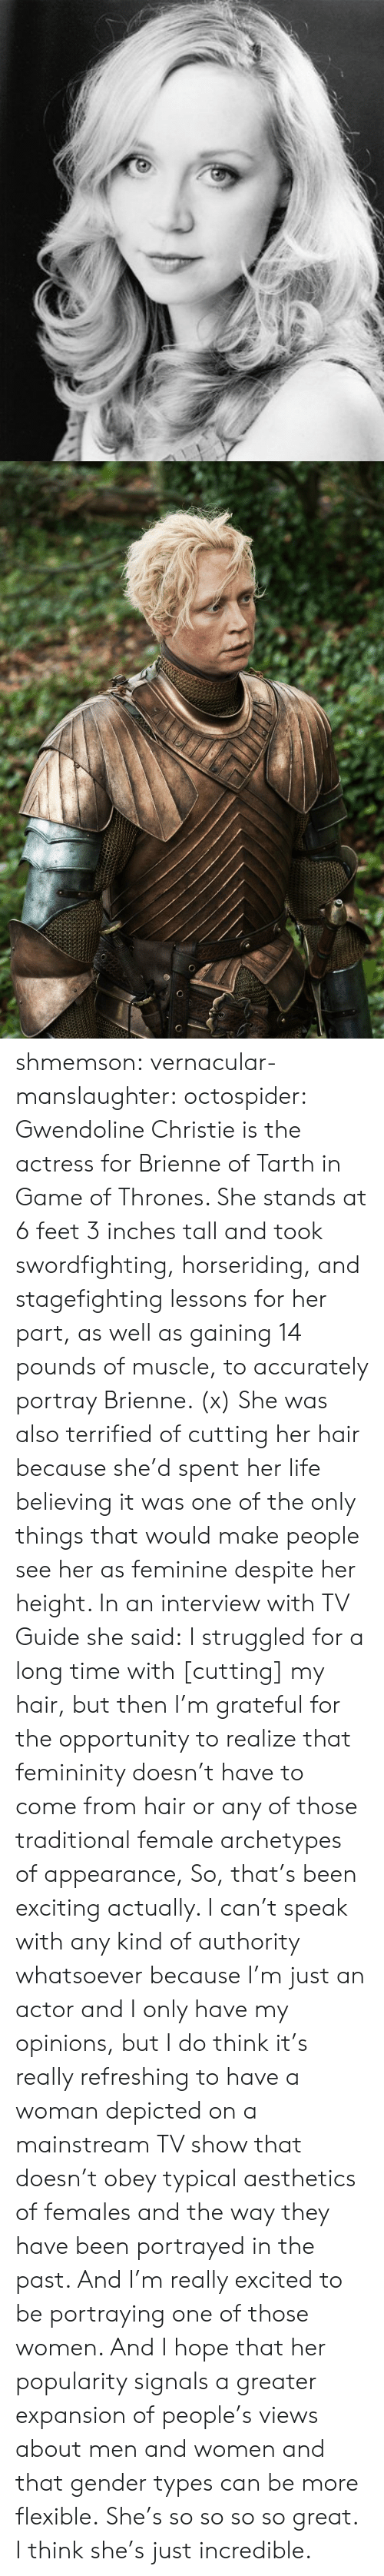 actress: shmemson:  vernacular-manslaughter:  octospider:  Gwendoline Christie is the actress for Brienne of Tarth in Game of Thrones. She stands at 6 feet 3 inches tall and took swordfighting, horseriding, and stagefighting lessons for her part, as well as gaining 14 pounds of muscle, to accurately portray Brienne. (x)  She was also terrified of cutting her hair because she'd spent her life believing it was one of the only things that would make people see her as feminine despite her height. In an interview with TV Guide she said: I struggled for a long time with [cutting] my hair, but then I'm grateful for the opportunity to realize that femininity doesn't have to come from hair or any of those traditional female archetypes of appearance, So, that's been exciting actually. I can't speak with any kind of authority whatsoever because I'm just an actor and I only have my opinions, but I do think it's really refreshing to have a woman depicted on a mainstream TV show that doesn't obey typical aesthetics of females and the way they have been portrayed in the past. And I'm really excited to be portraying one of those women. And I hope that her popularity signals a greater expansion of people's views about men and women and that gender types can be more flexible.  She's so so so so great. I think she's just incredible.